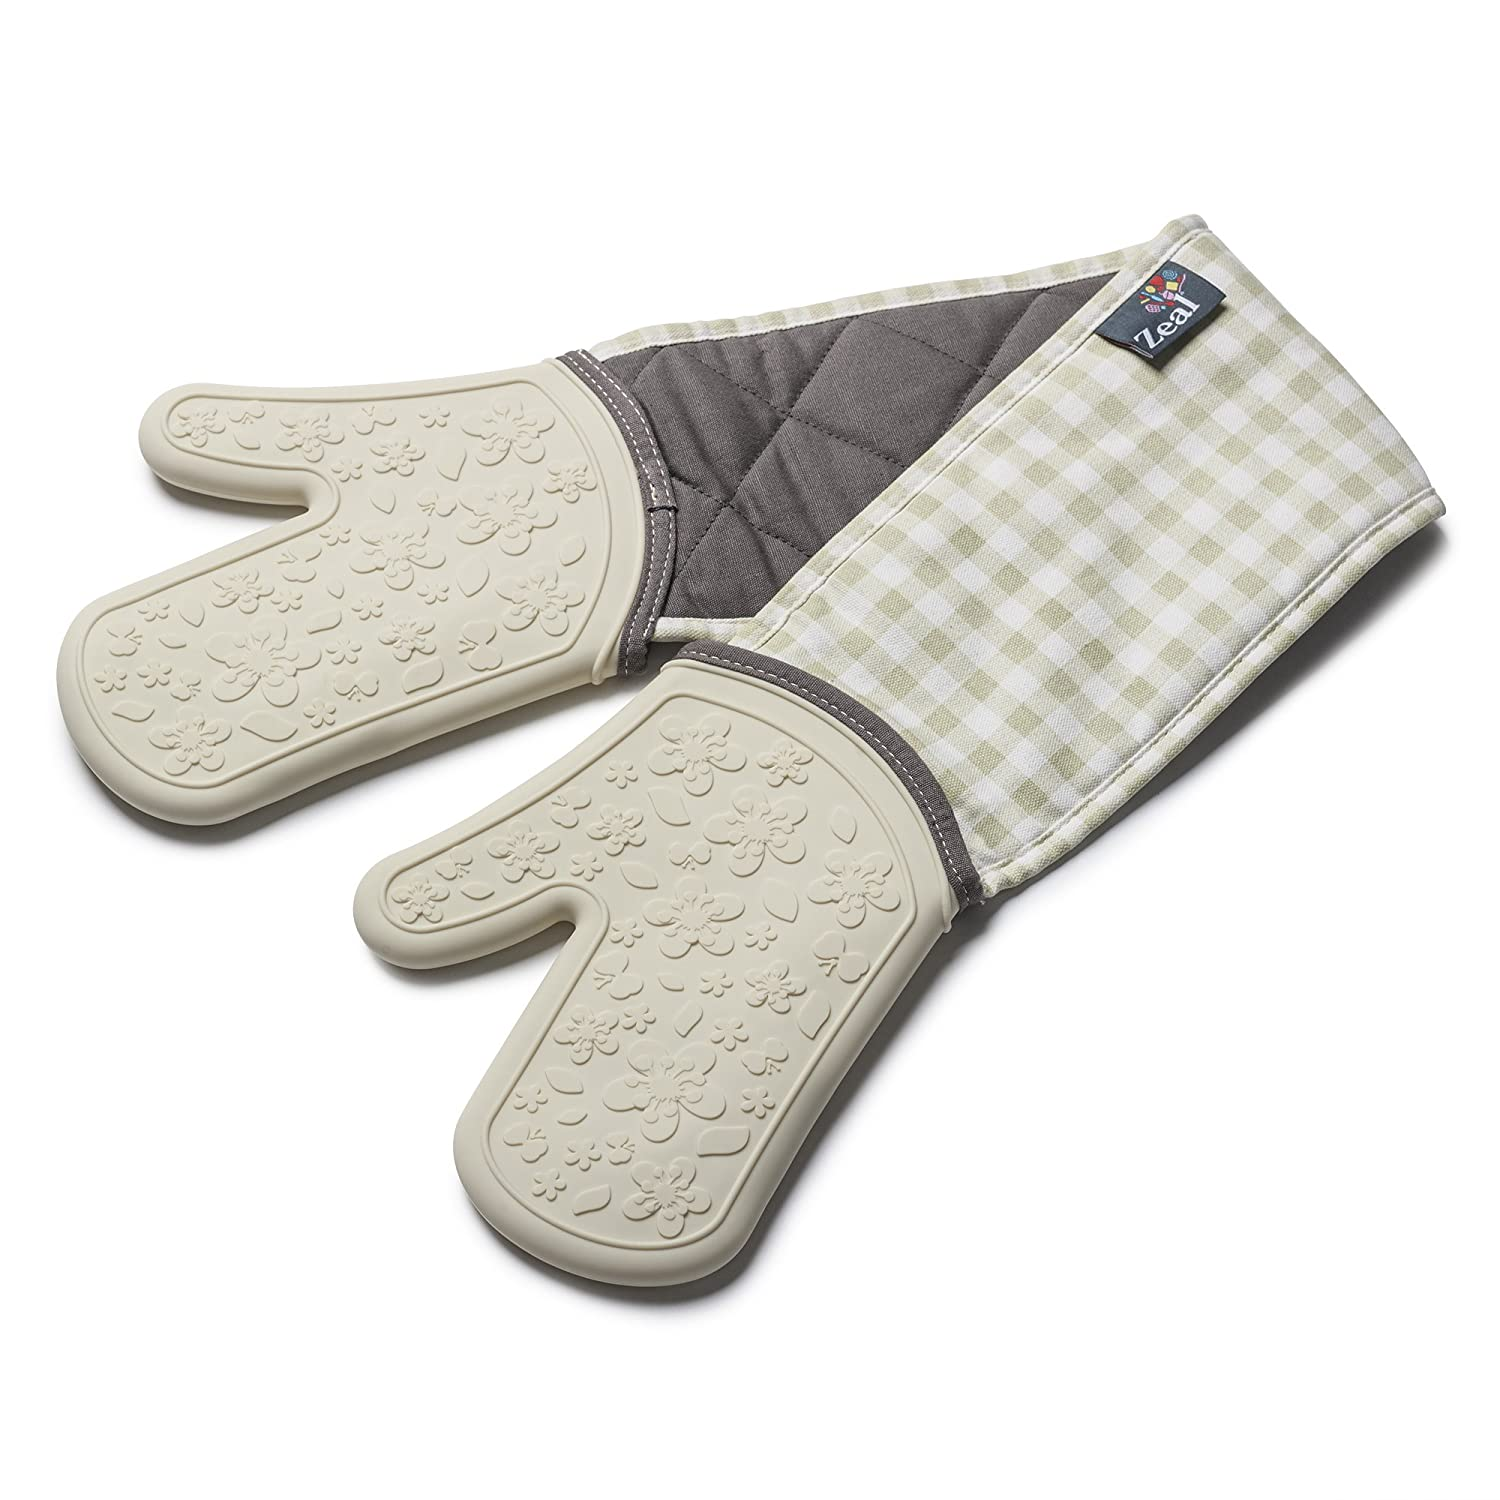 Zeal Steam Stop Silicone Waterproof Oven Mitts/Gloves, Gingham Cream